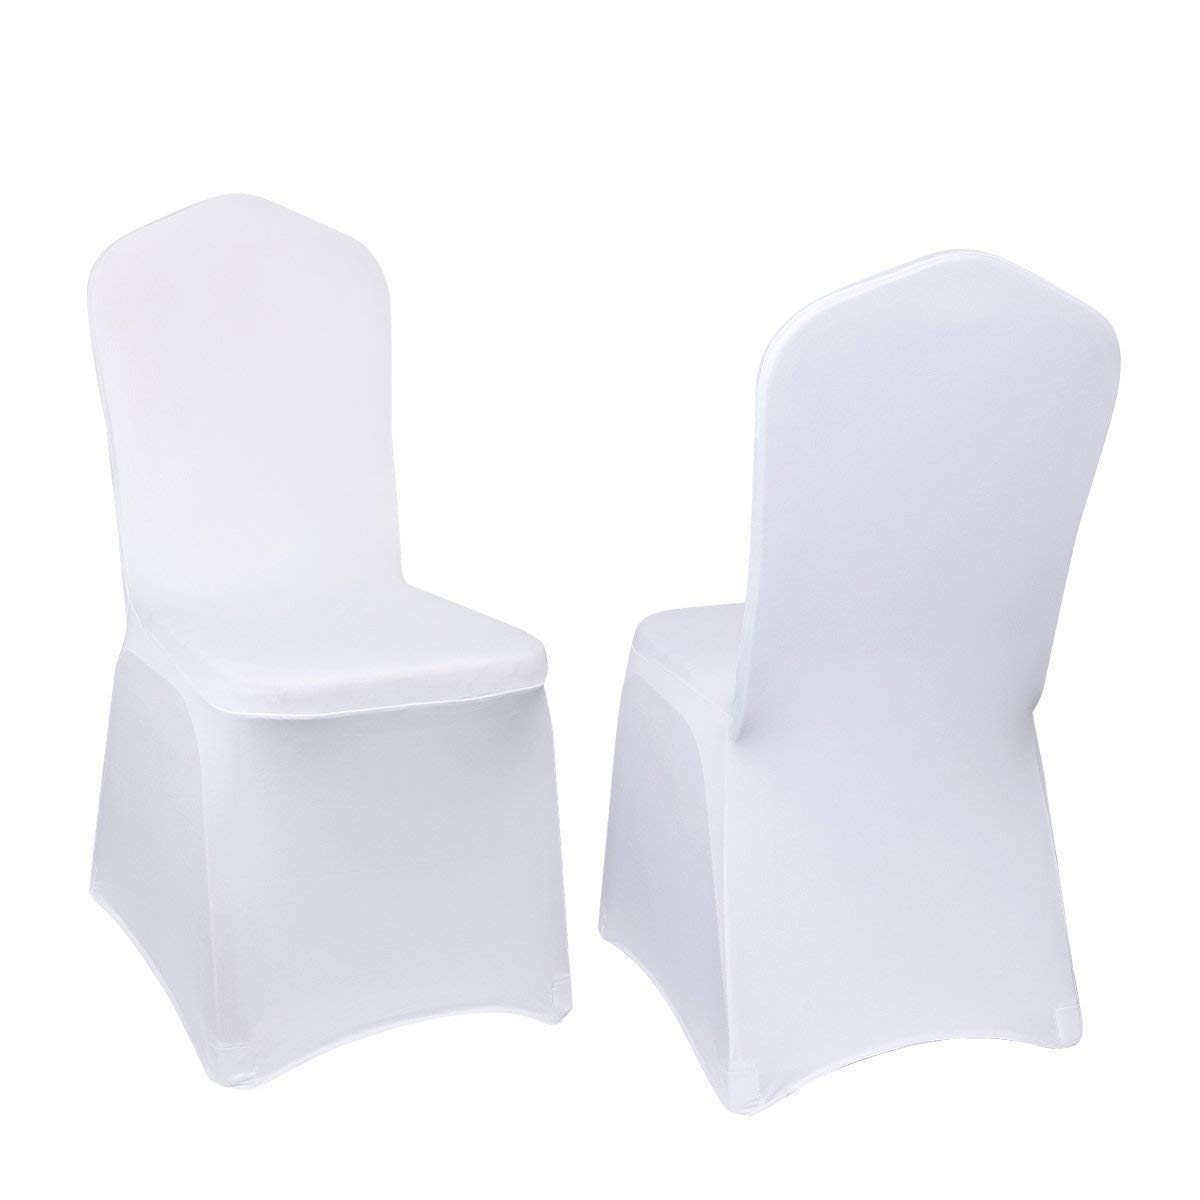 Phenomenal Vevor 100 Pcs White Chair Covers Polyester Spandex Chair Cover Stretch Slipcovers For Wedding Party Dining Banquet Chair Decoration Covers Flat Chair Inzonedesignstudio Interior Chair Design Inzonedesignstudiocom